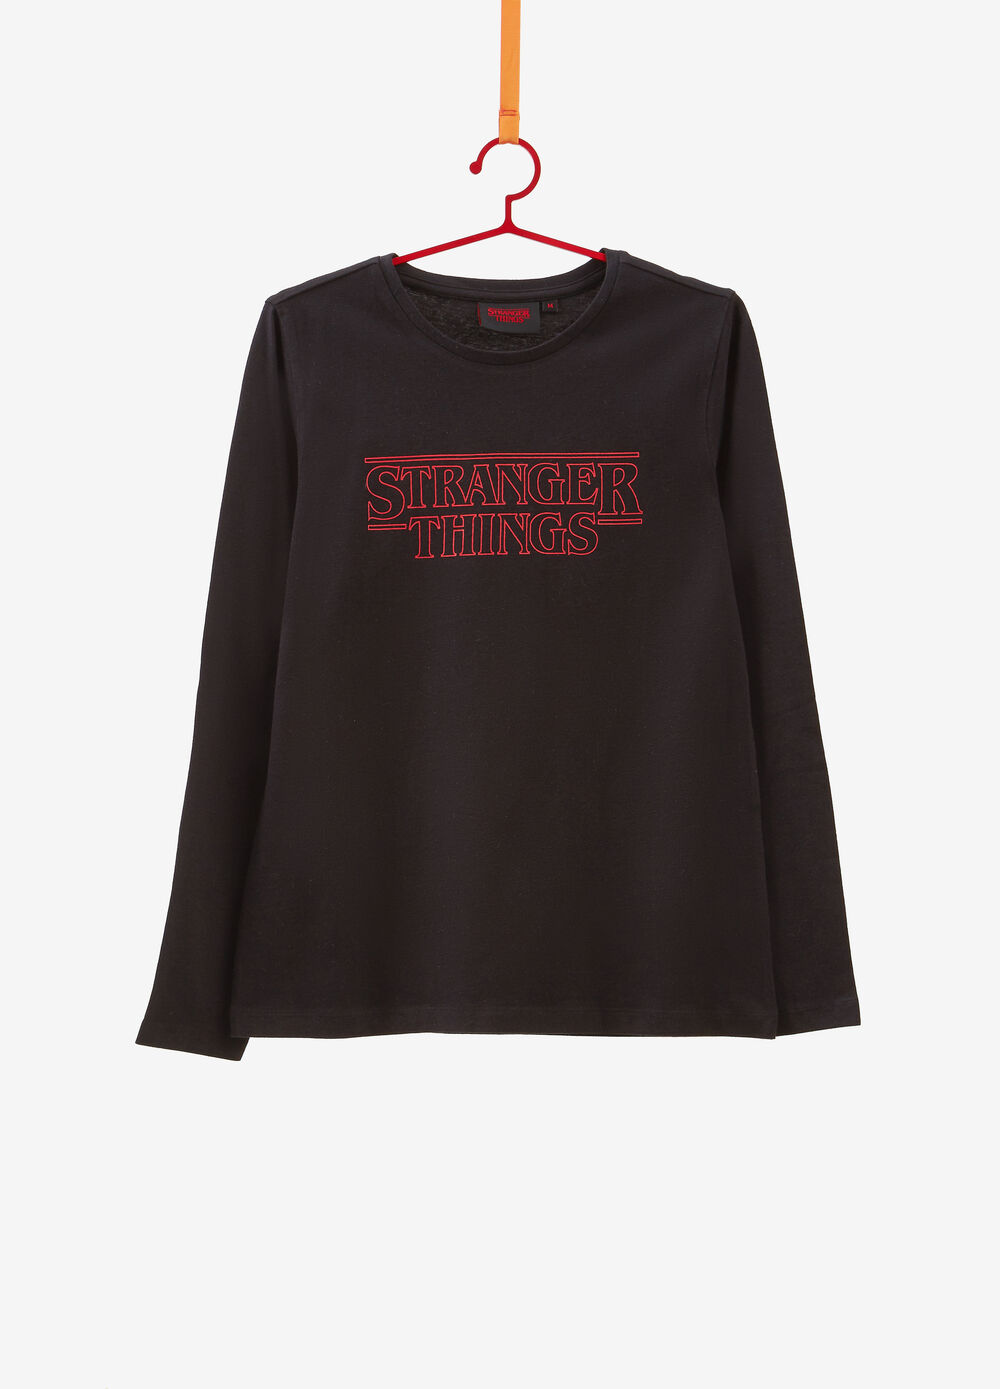 Stranger Things T-shirt with long sleeves